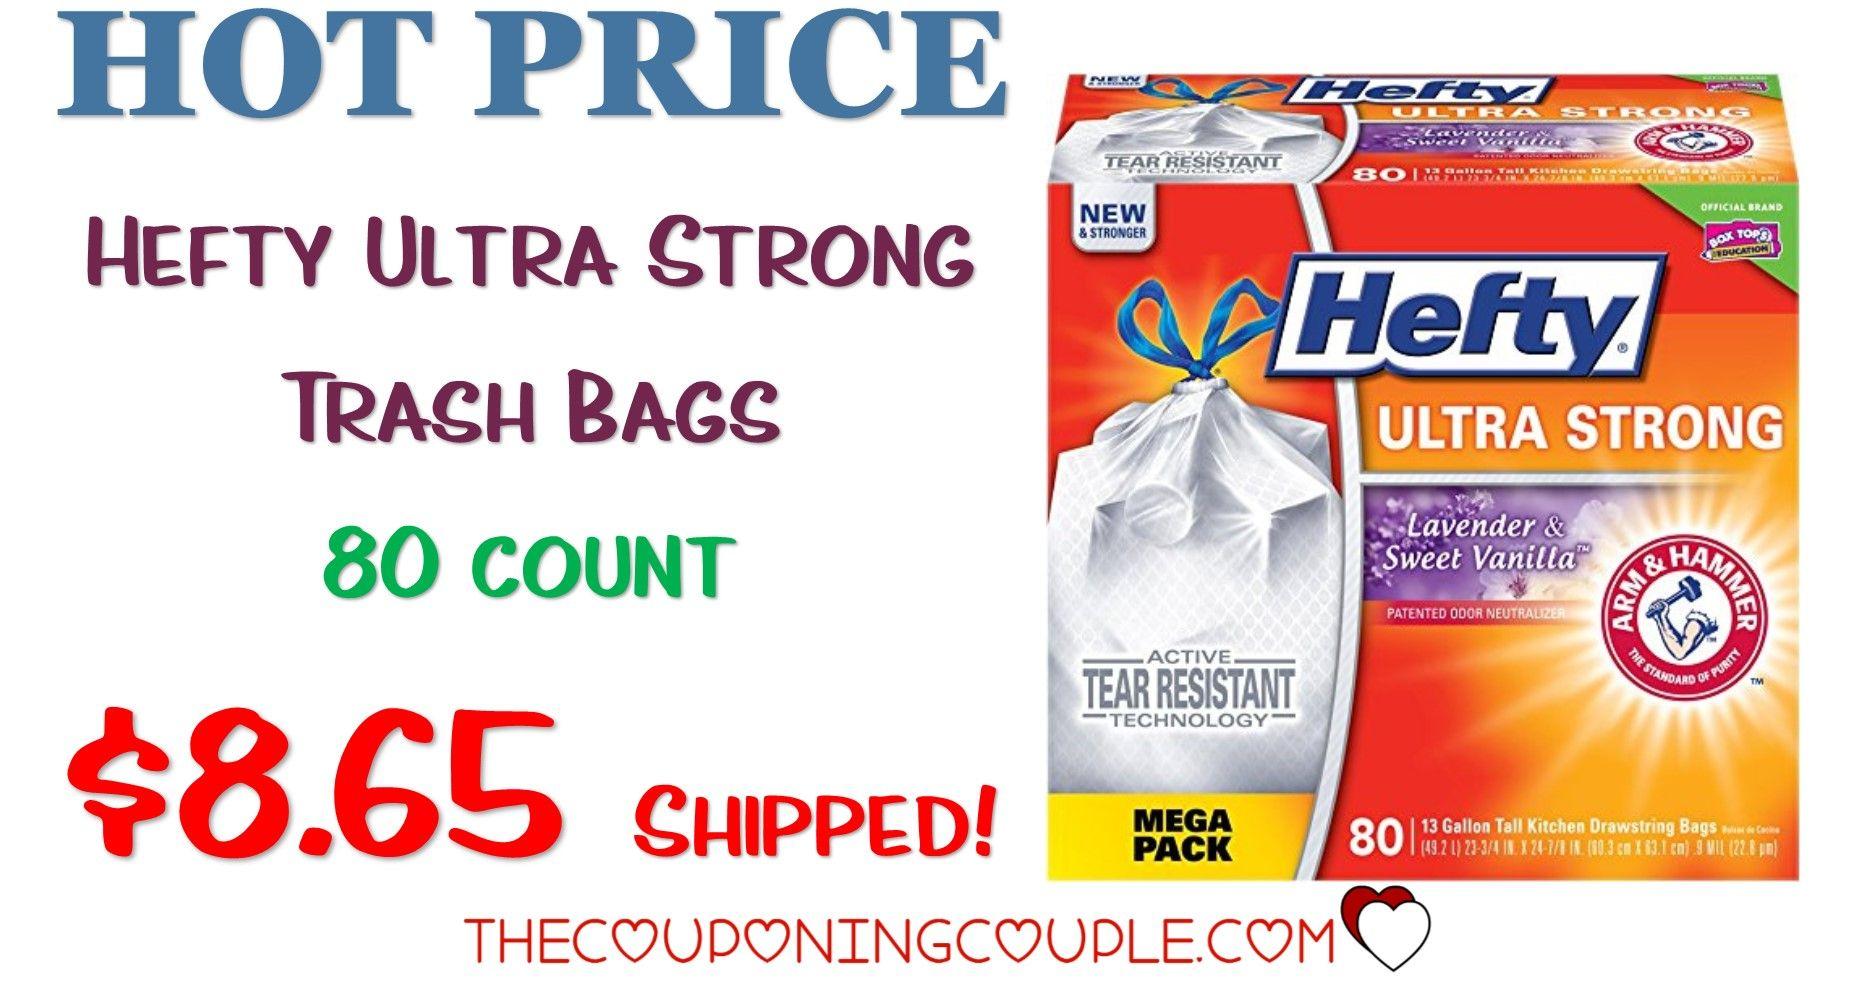 Hefty Ultra Strong Kitchen Trash Bags - 80 Count for $8.65 Shipped ...